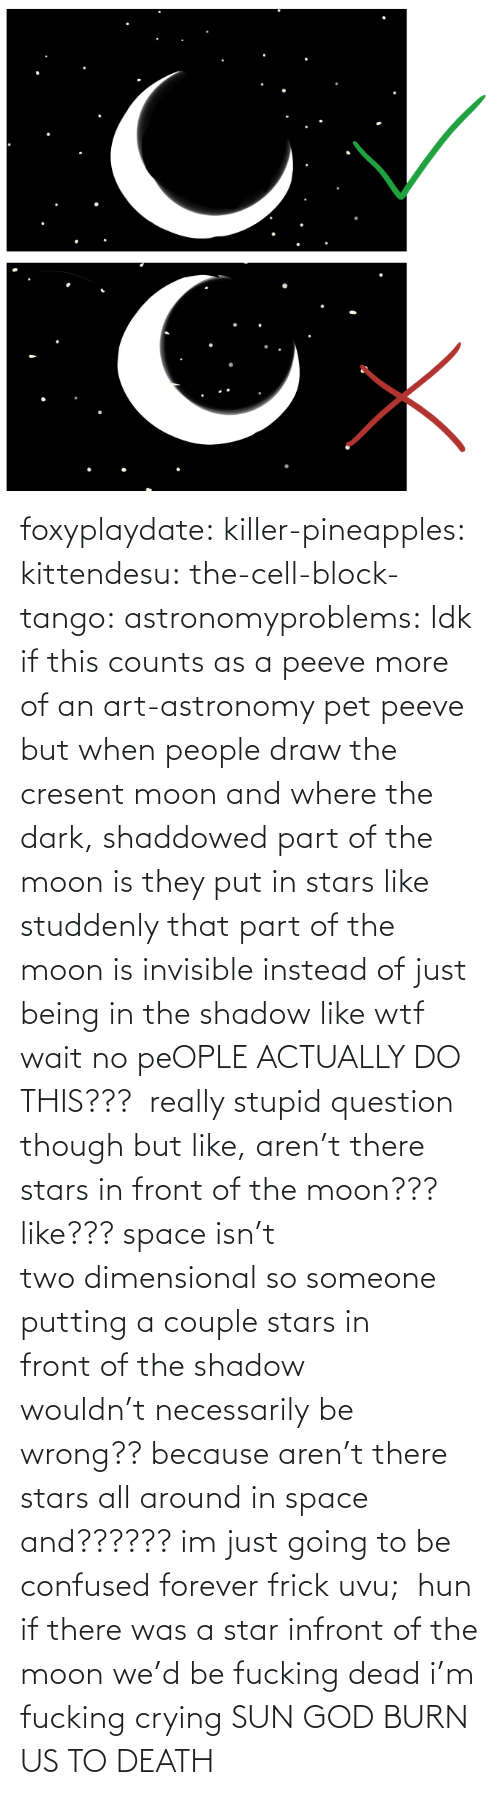 Stars: foxyplaydate: killer-pineapples:  kittendesu:  the-cell-block-tango:  astronomyproblems:  Idk if this counts as a peeve more of an art-astronomy pet peeve but when people draw the cresent moon and where the dark, shaddowed part of the moon is they put in stars like studdenly that part of the moon is invisible instead of just being in the shadow like wtf  wait no peOPLE ACTUALLY DO THIS???   really stupid question though but like, aren't there stars in front of the moon??? like??? space isn't two dimensional so someone putting a couple stars in front of the shadow wouldn't necessarily be wrong?? because aren't there stars all around in space and?????? im just going to be confused forever frick uvu;   hun if there was a star infront of the moon we'd be fucking dead  i'm fucking crying    SUN GOD BURN US TO DEATH